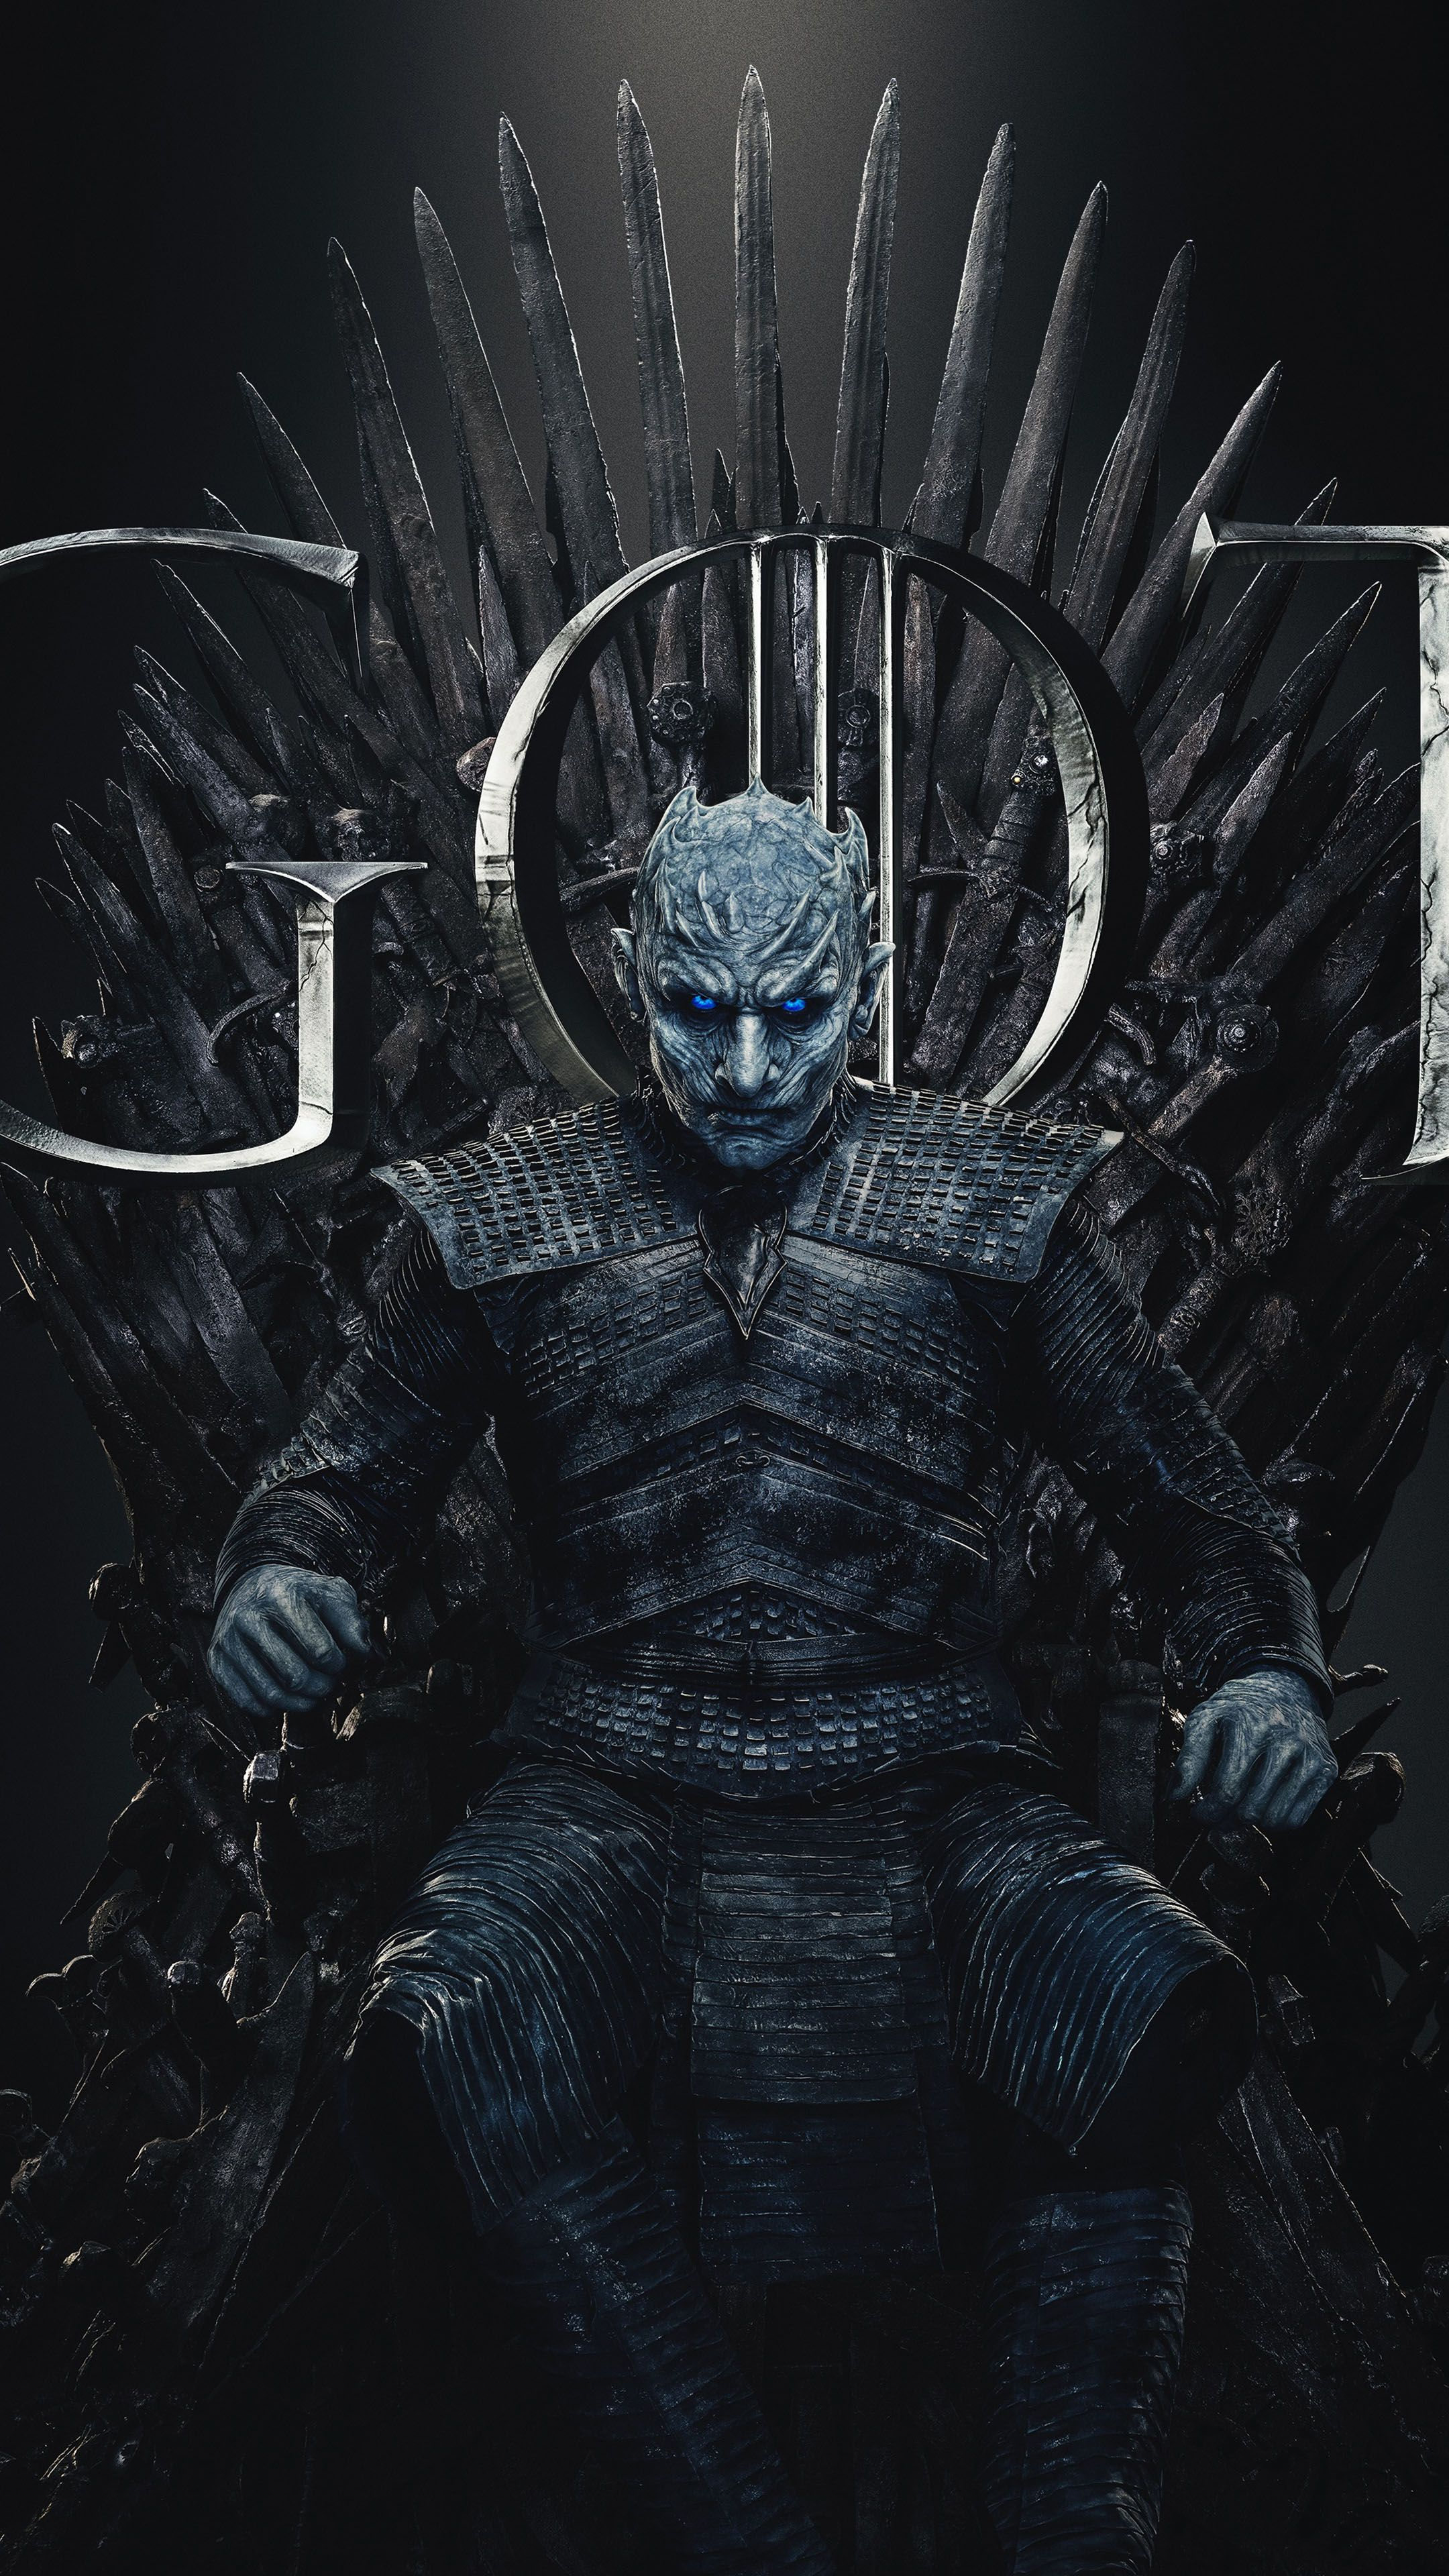 Download Night King Game Of Thrones Season 8 Free Pure 4k Ultra Hd Retro Games Wallpaper Funny Wallpapers Kings Game